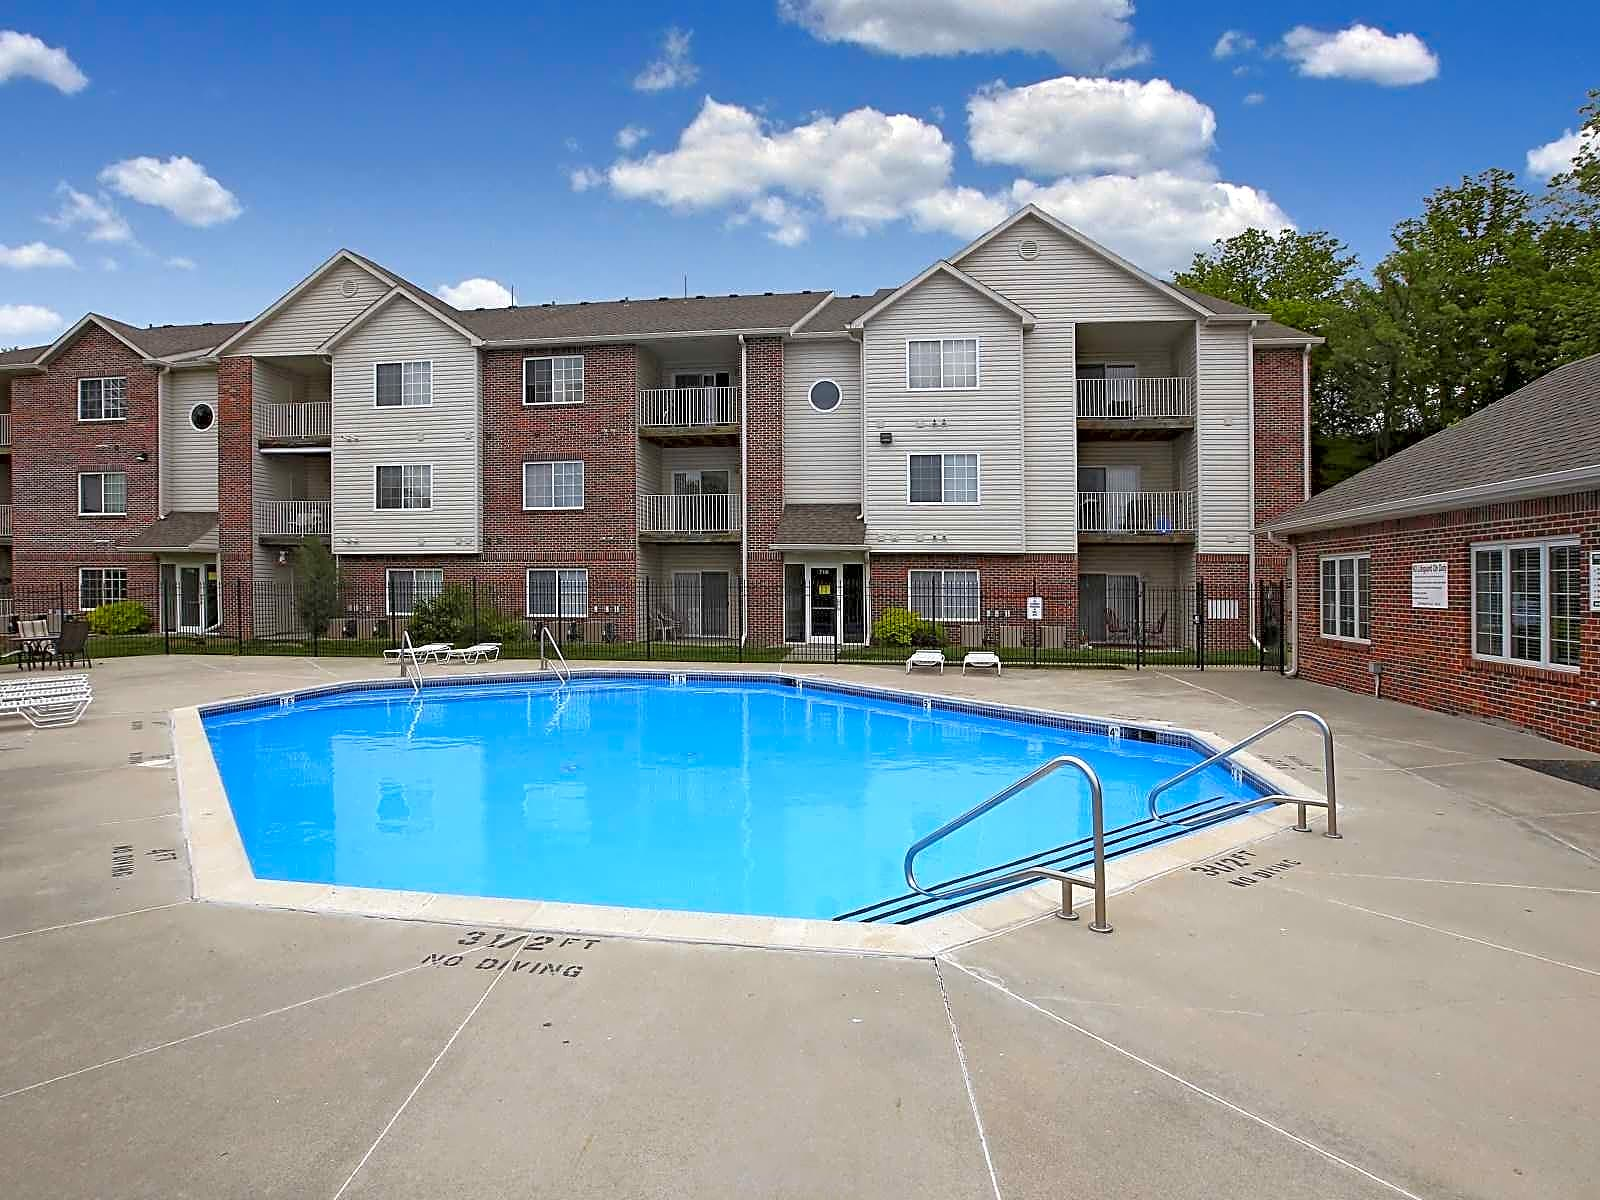 Apartments Near Bellevue Valley View Estates for Bellevue University Students in Bellevue, NE